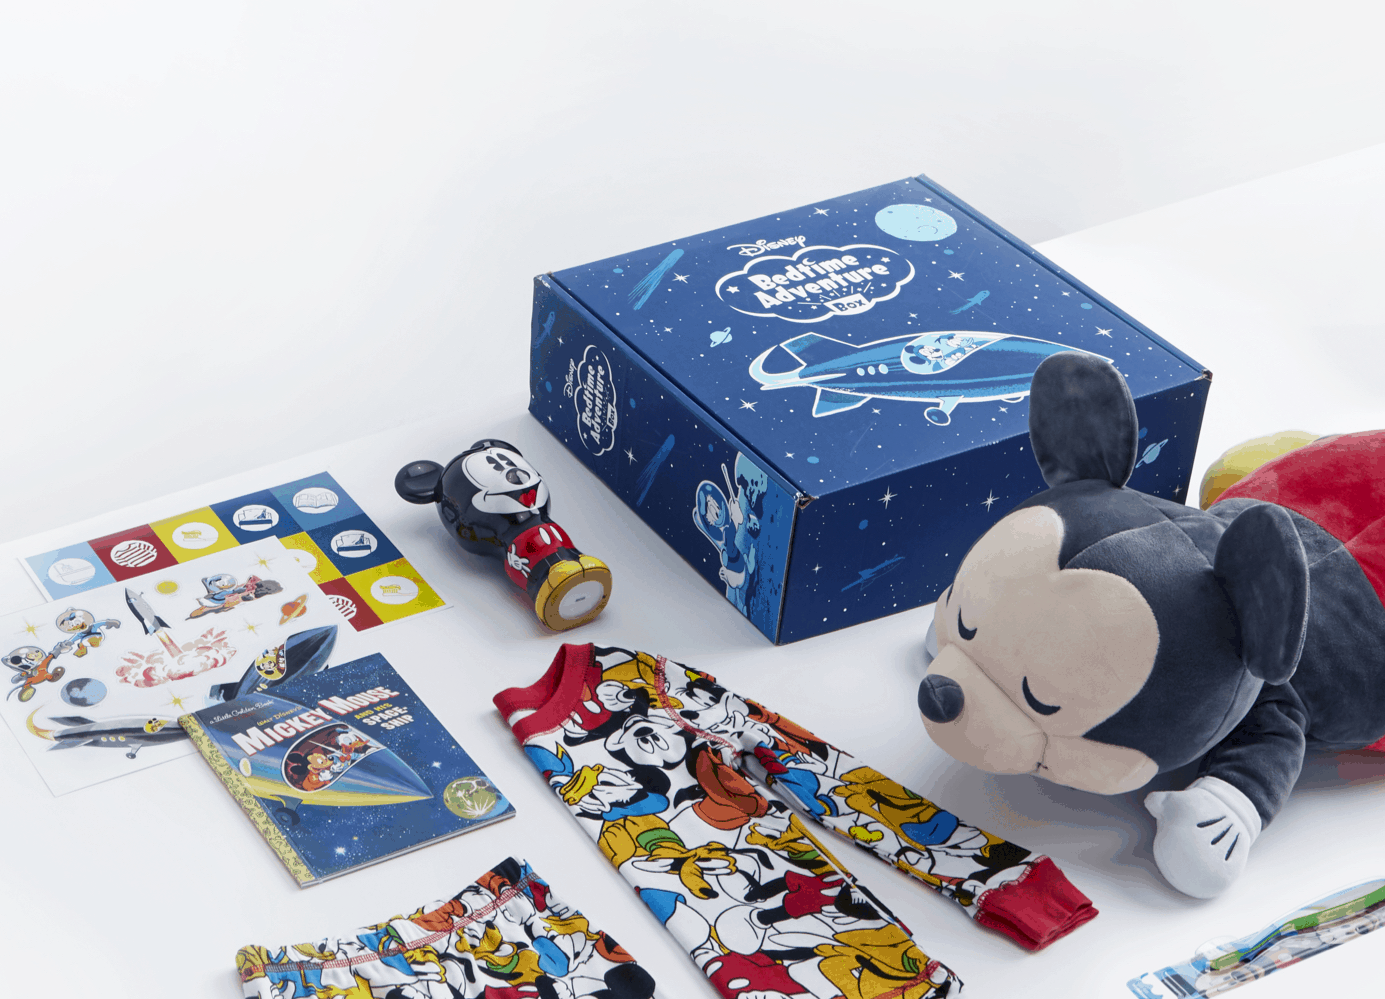 Newest Subscription Boxes: Disney Bedtime Adventure Subscription Box Coming Soon!